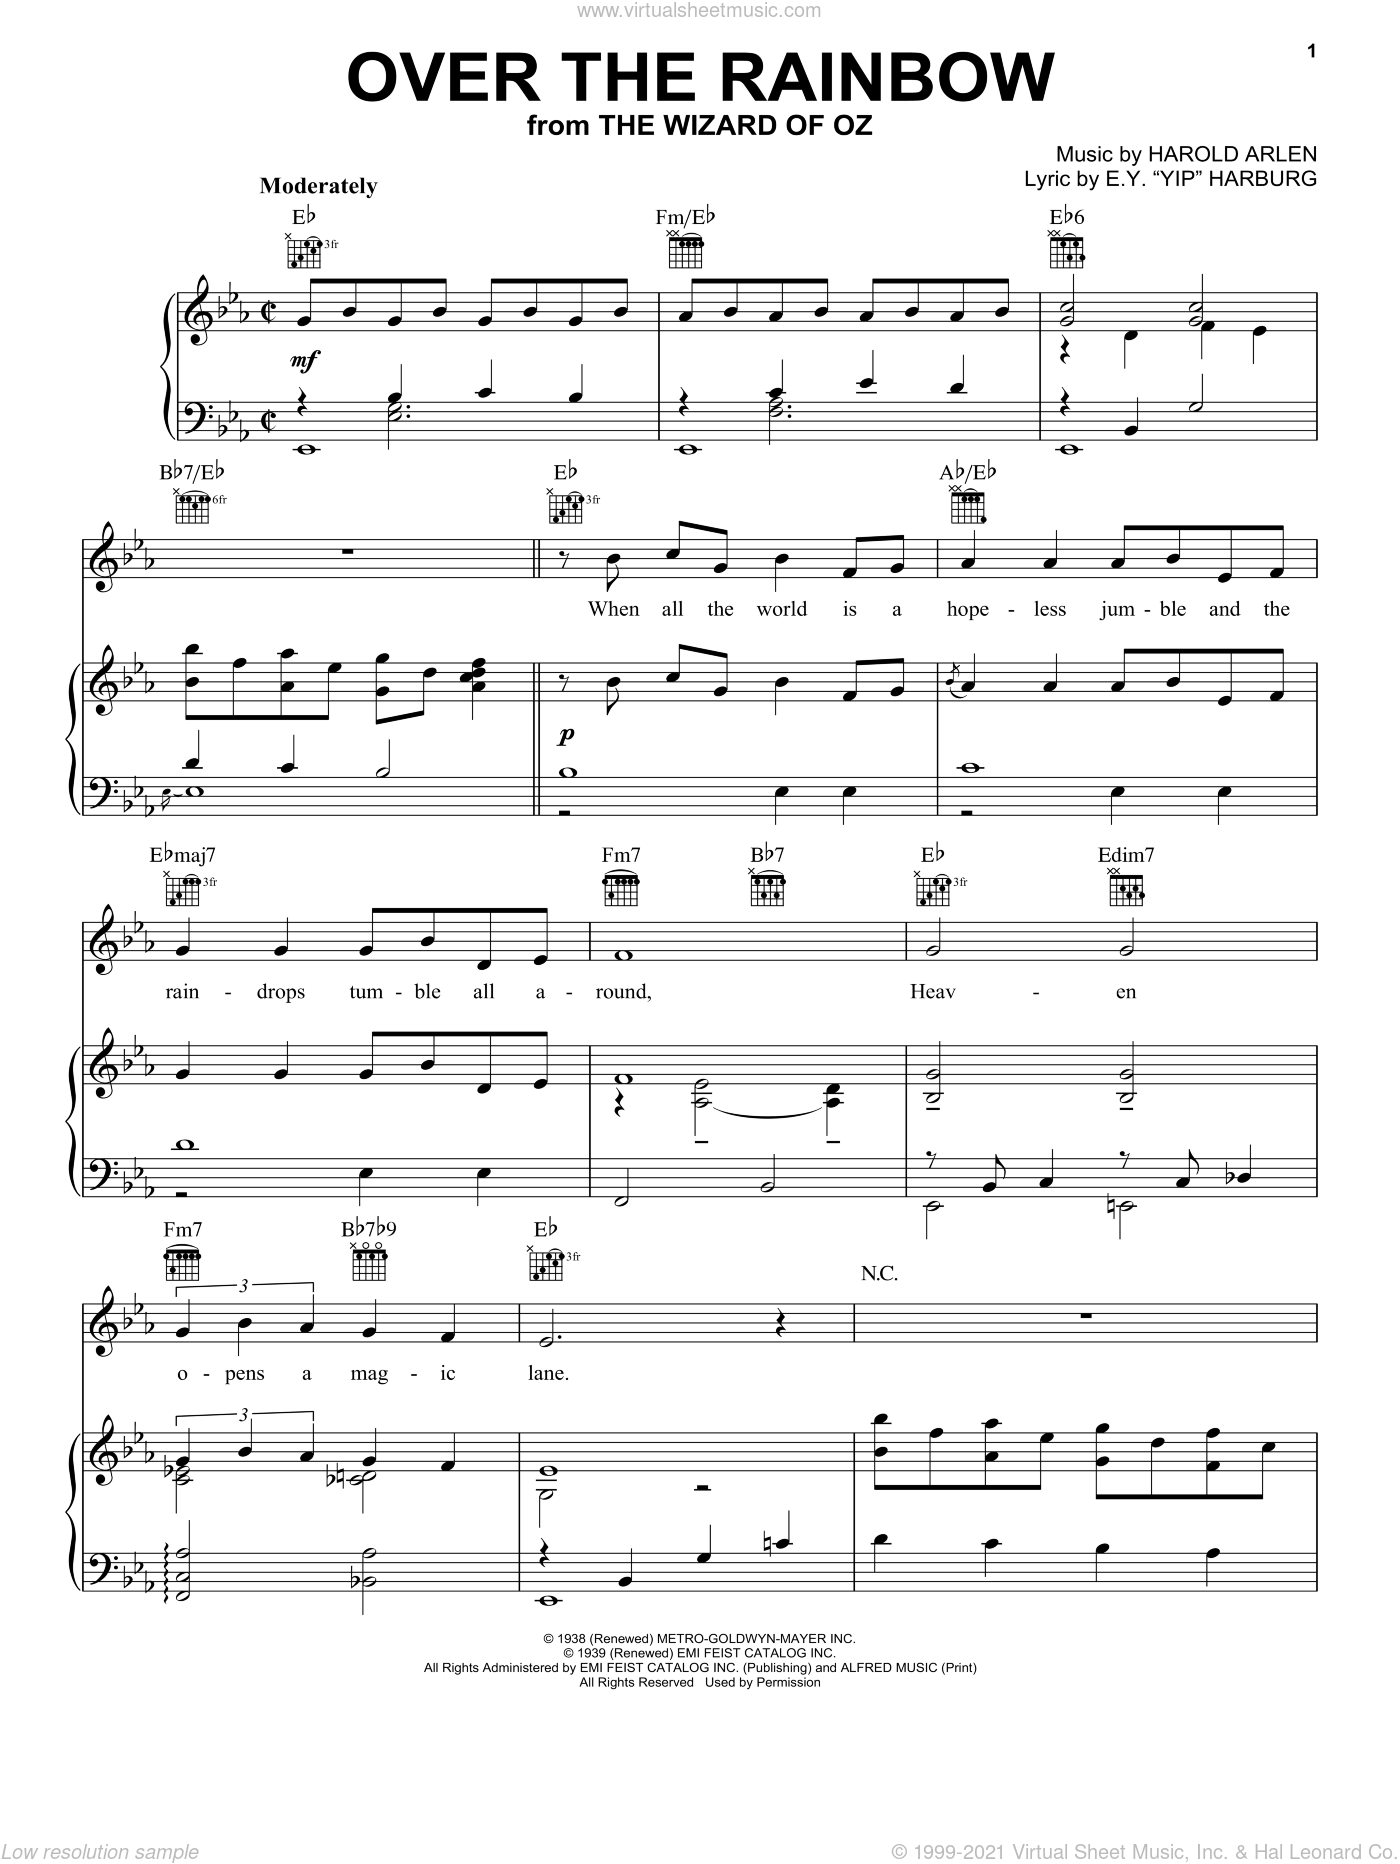 Over The Rainbow sheet music for voice, piano or guitar by Judy Garland, The Wizard Of Oz (Movie), E.Y. Harburg and Harold Arlen, intermediate skill level